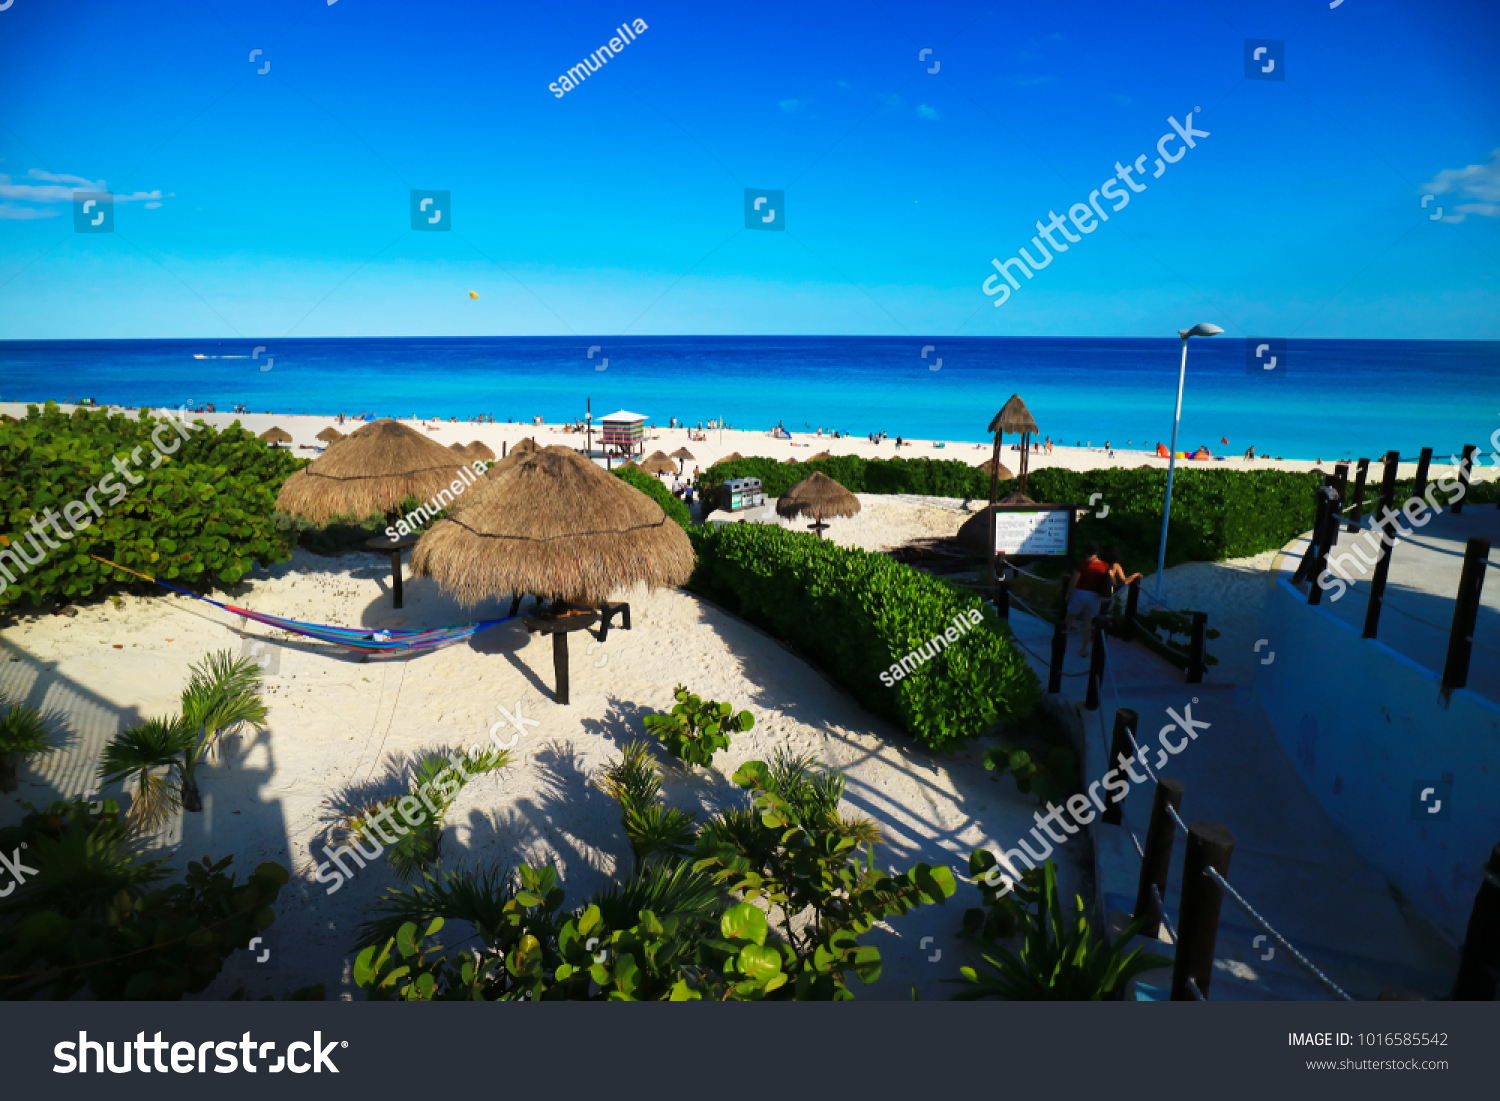 Vacation Holidays Sea Forbackground Wallpaperplaya Marlin Stock Photo Edit Now 1016585542